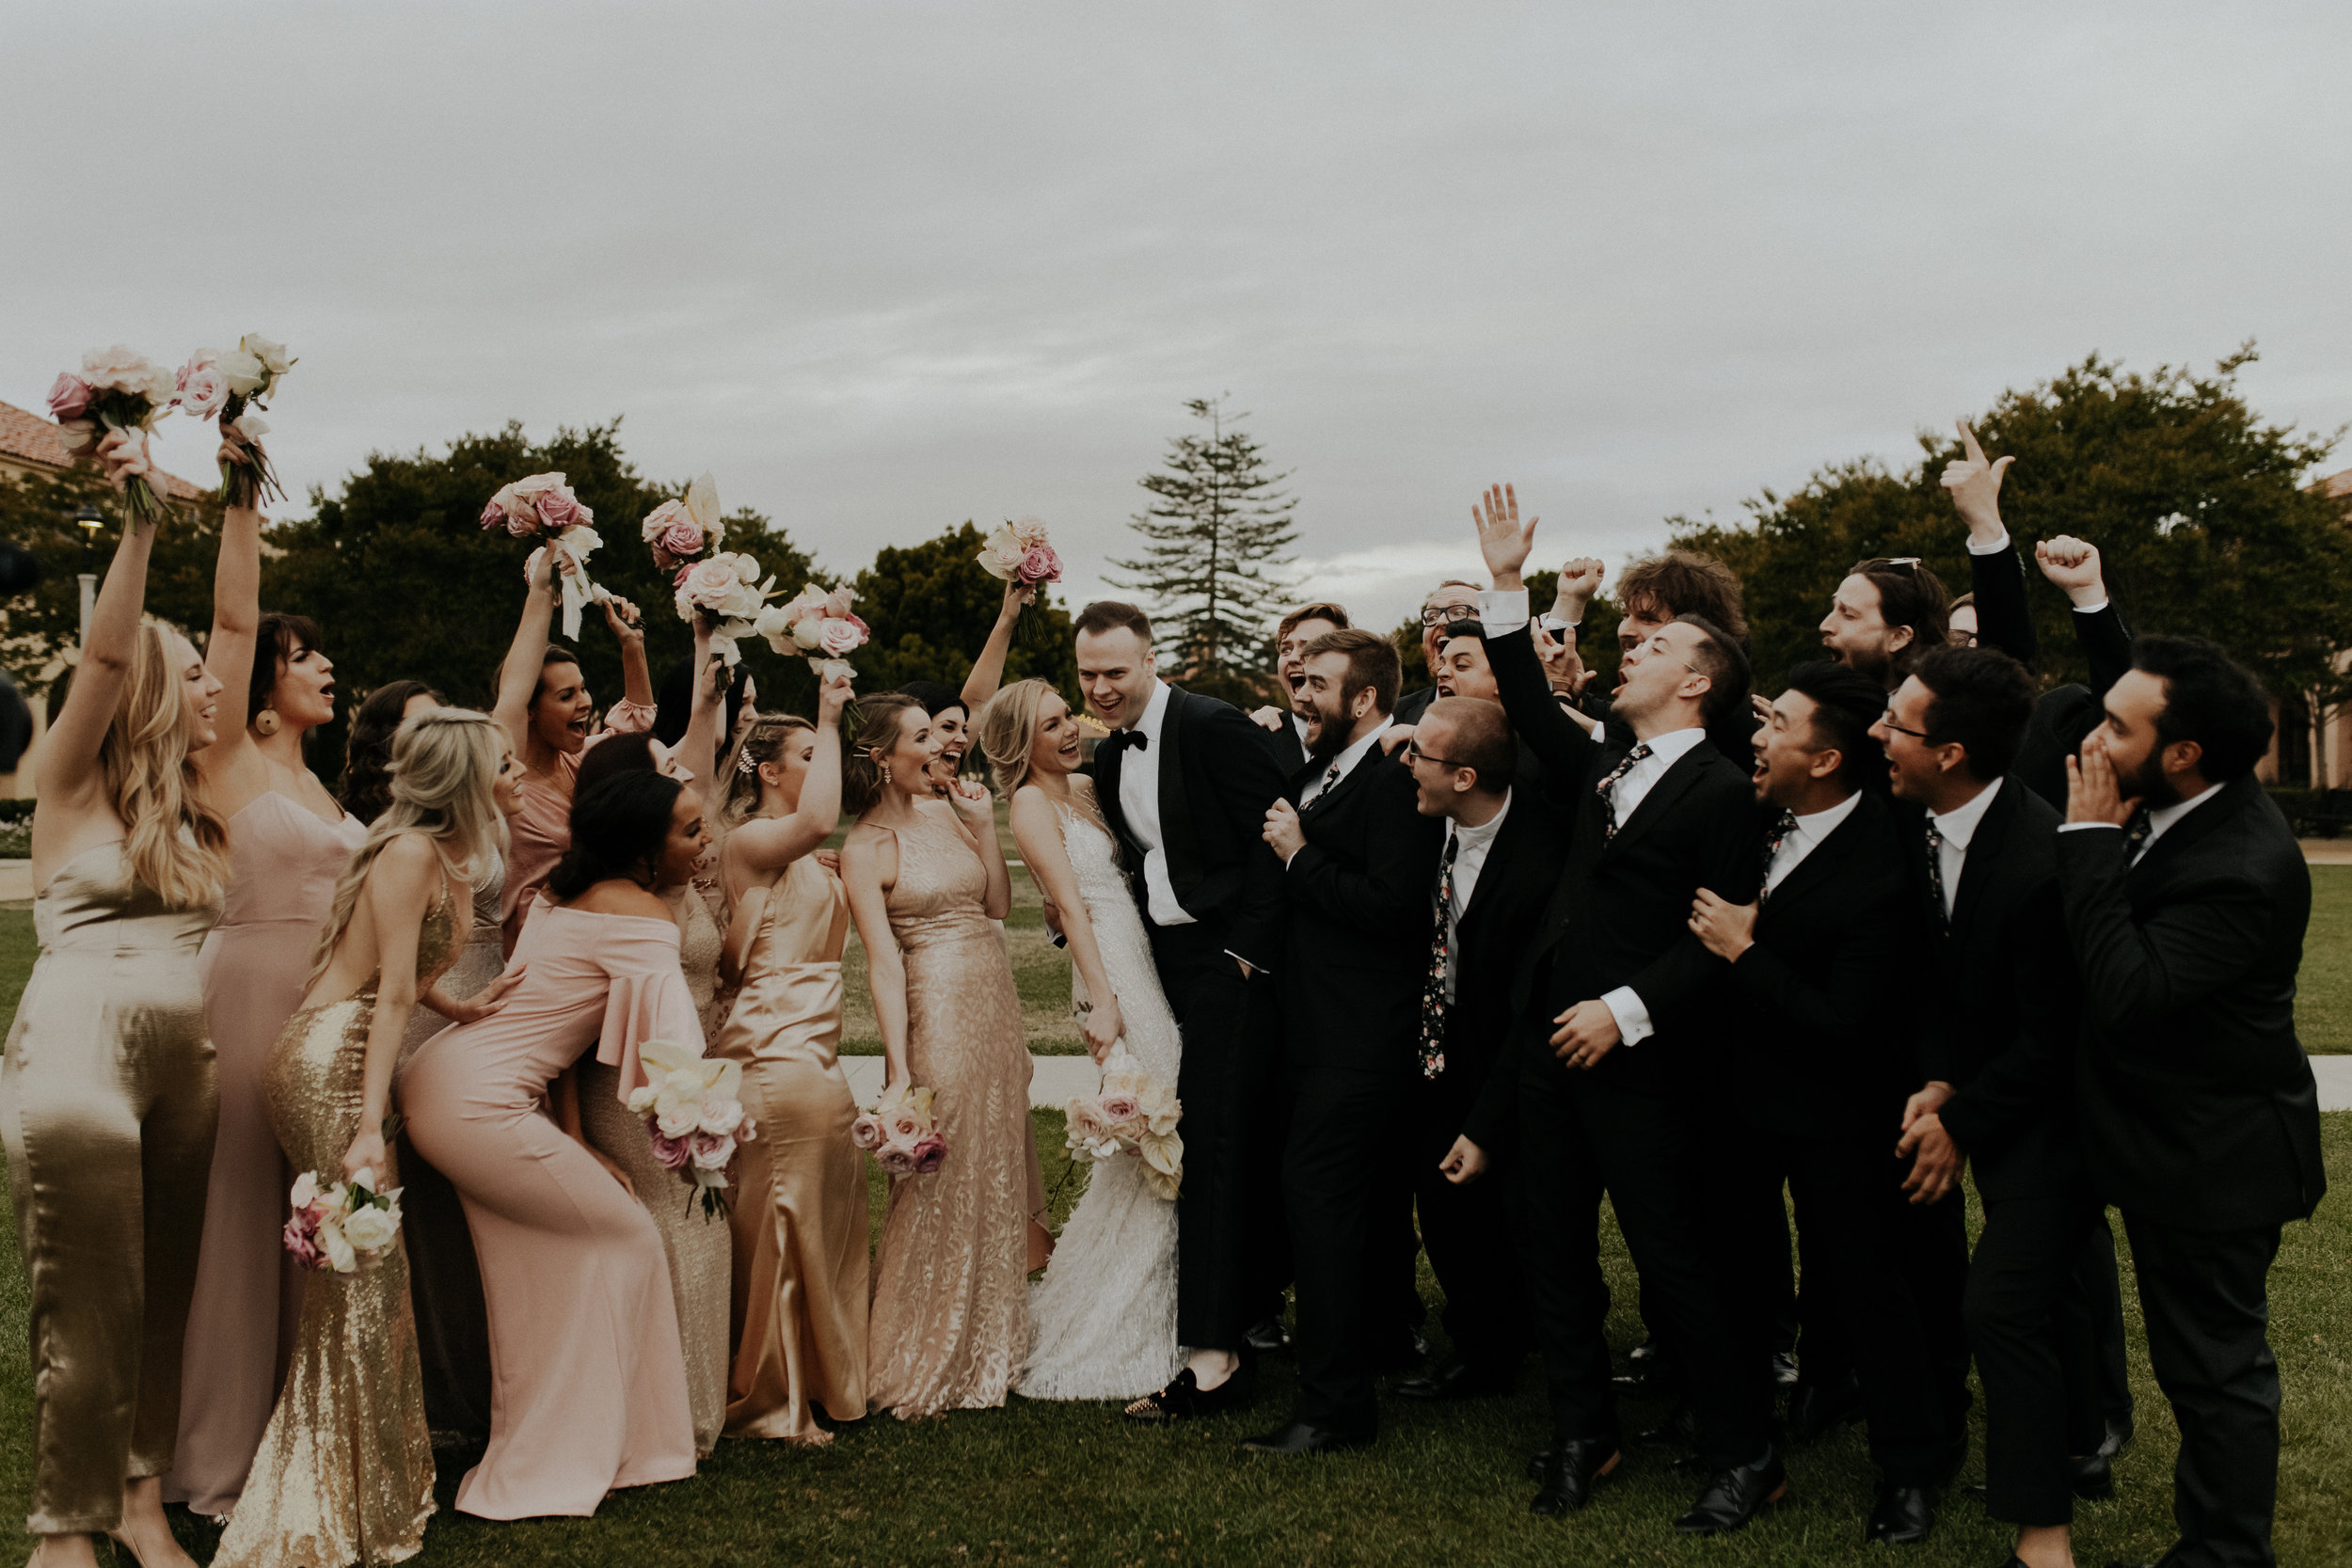 The ultimate hype-crew. They don't call it the 'wedding party' for no reason…